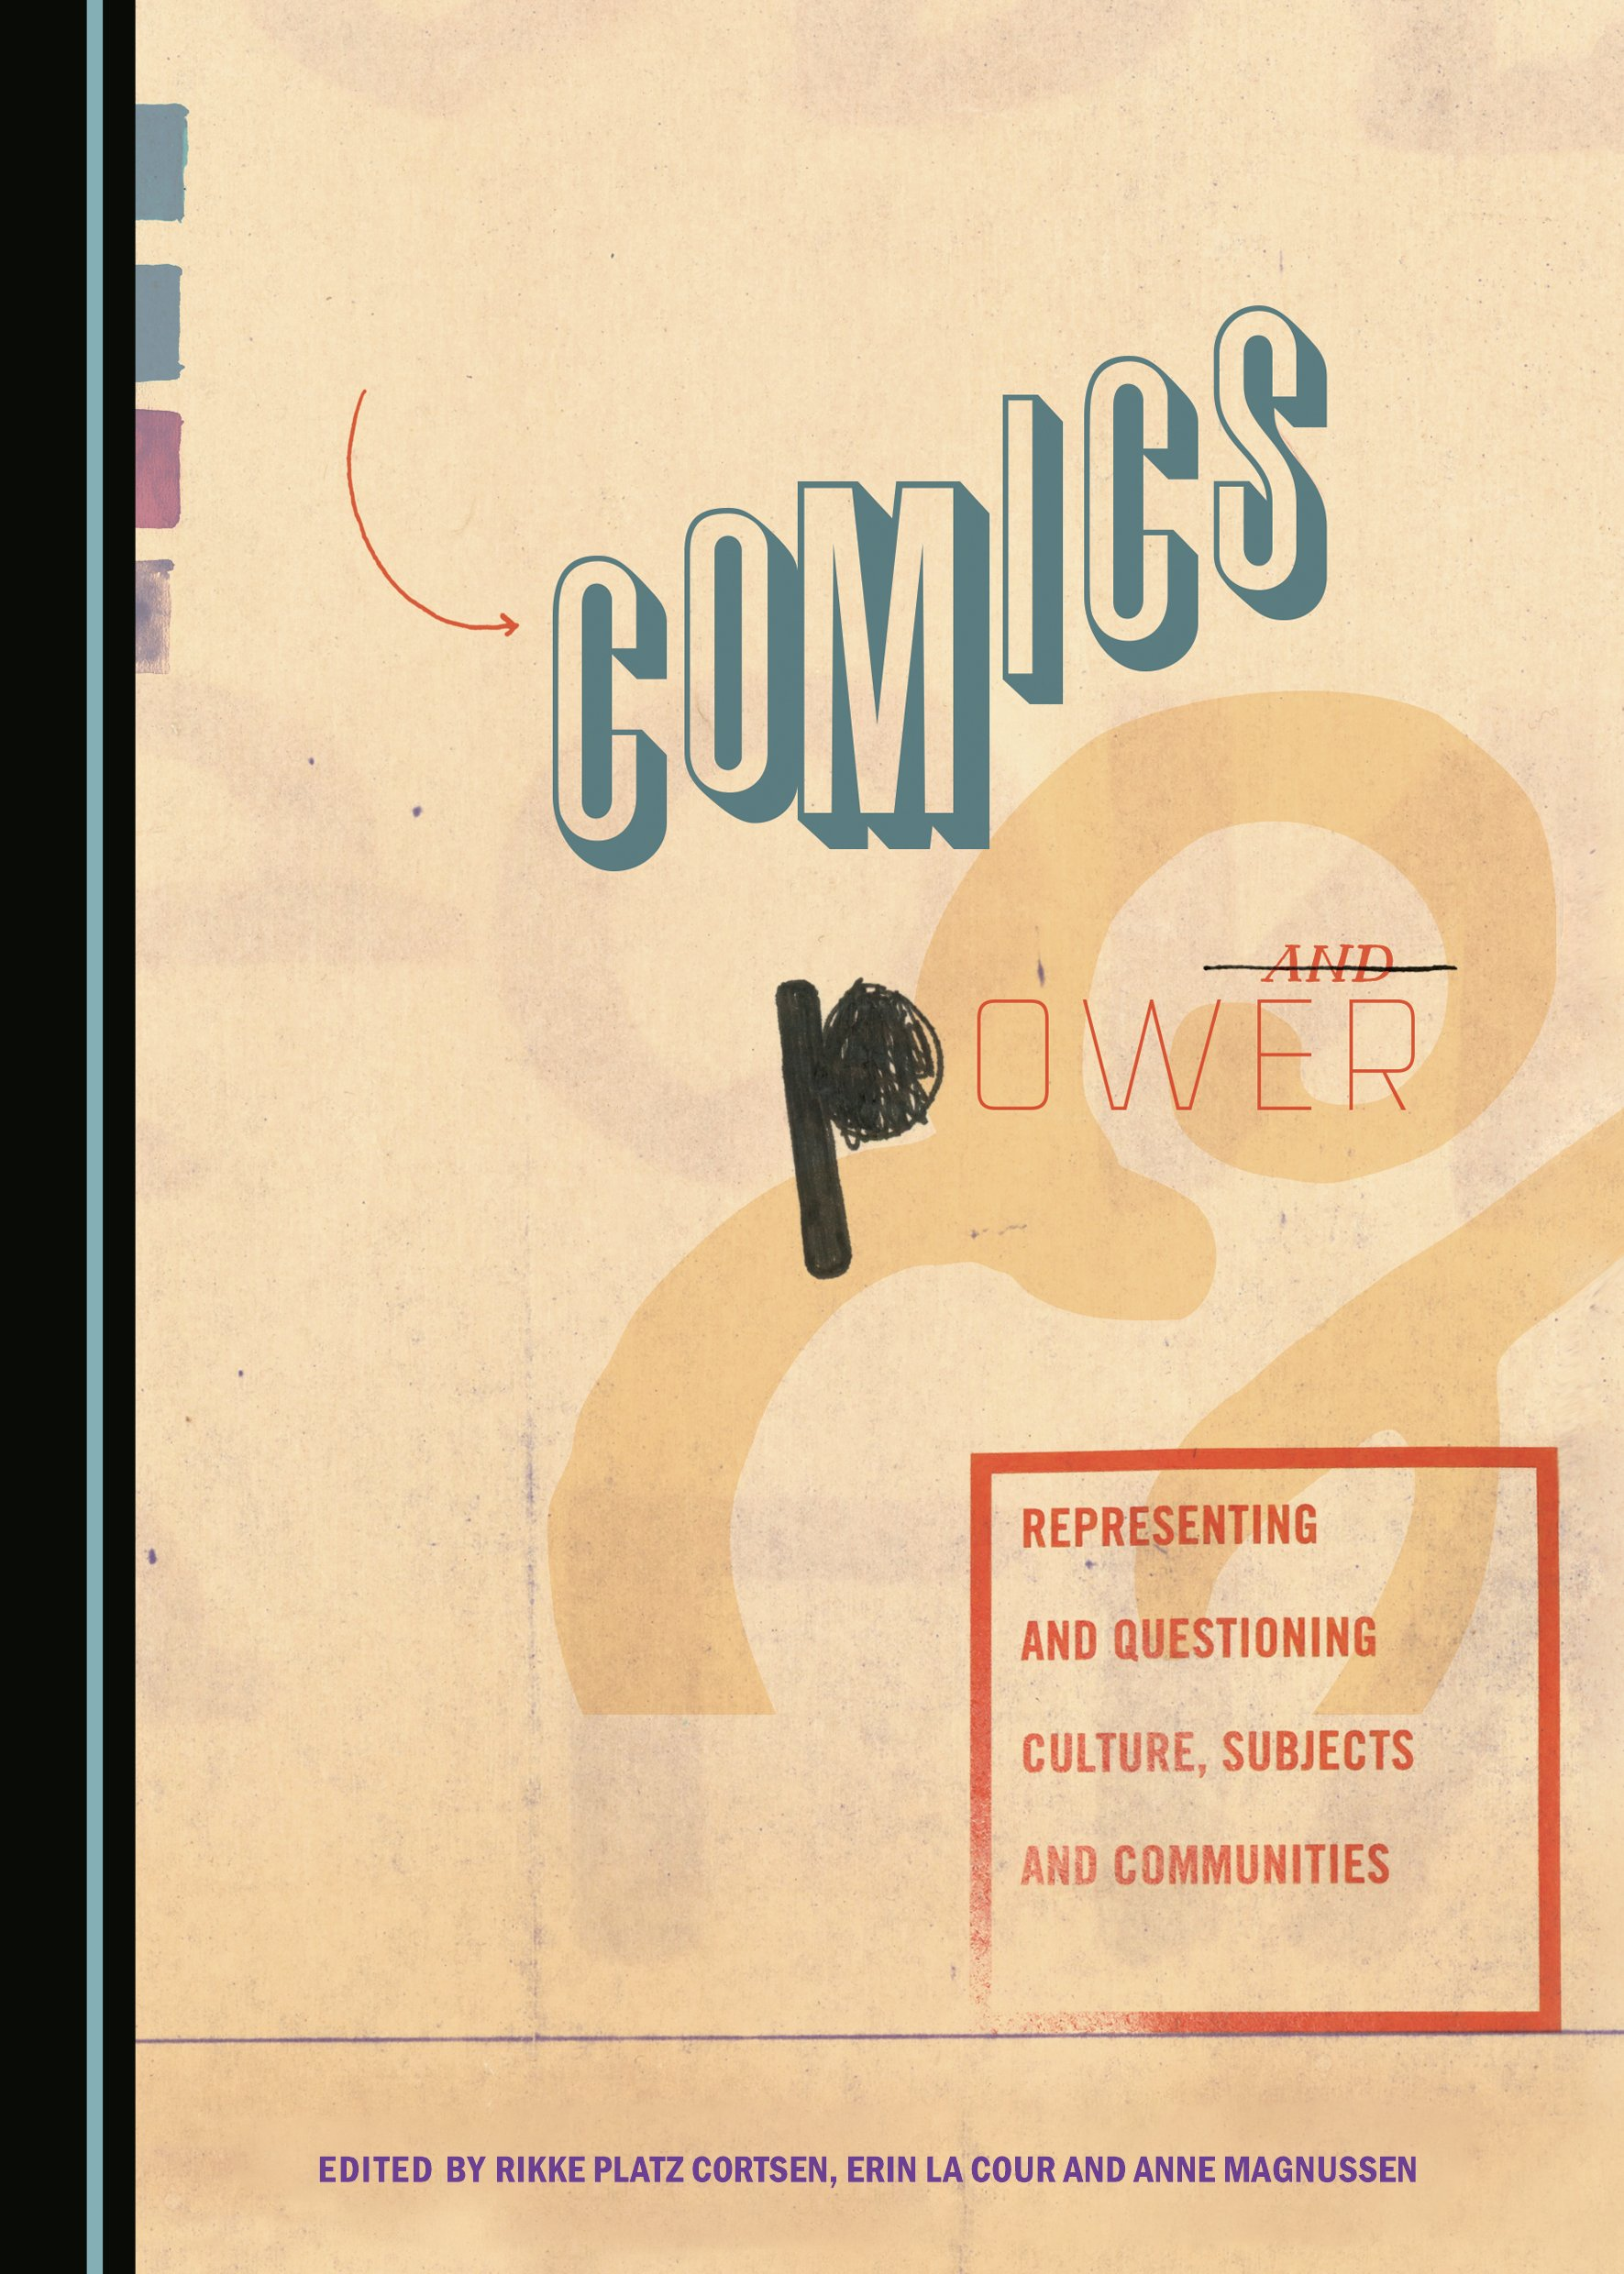 Comics and Power: Representing and Questioning Culture, Subjects and Communities